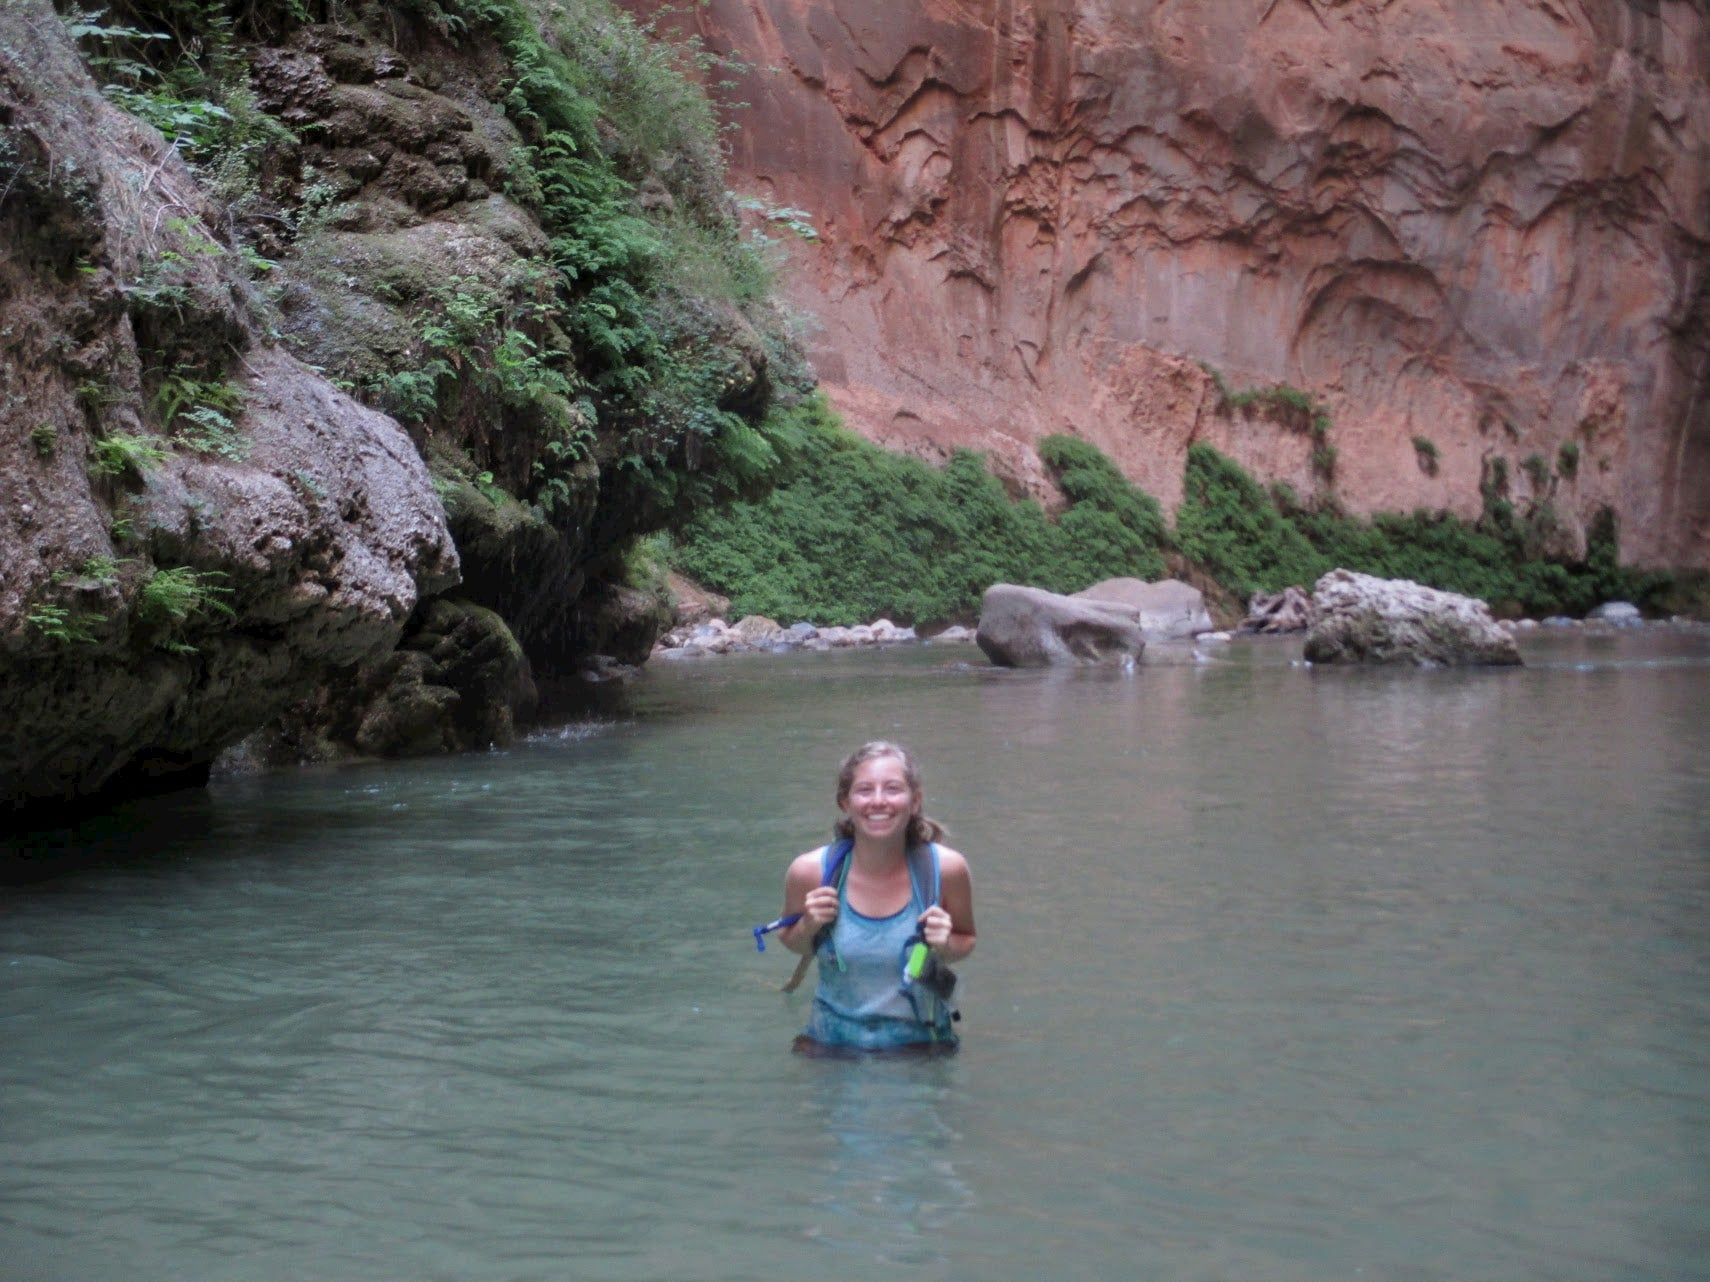 Women with backpack wading through water in a canyon.